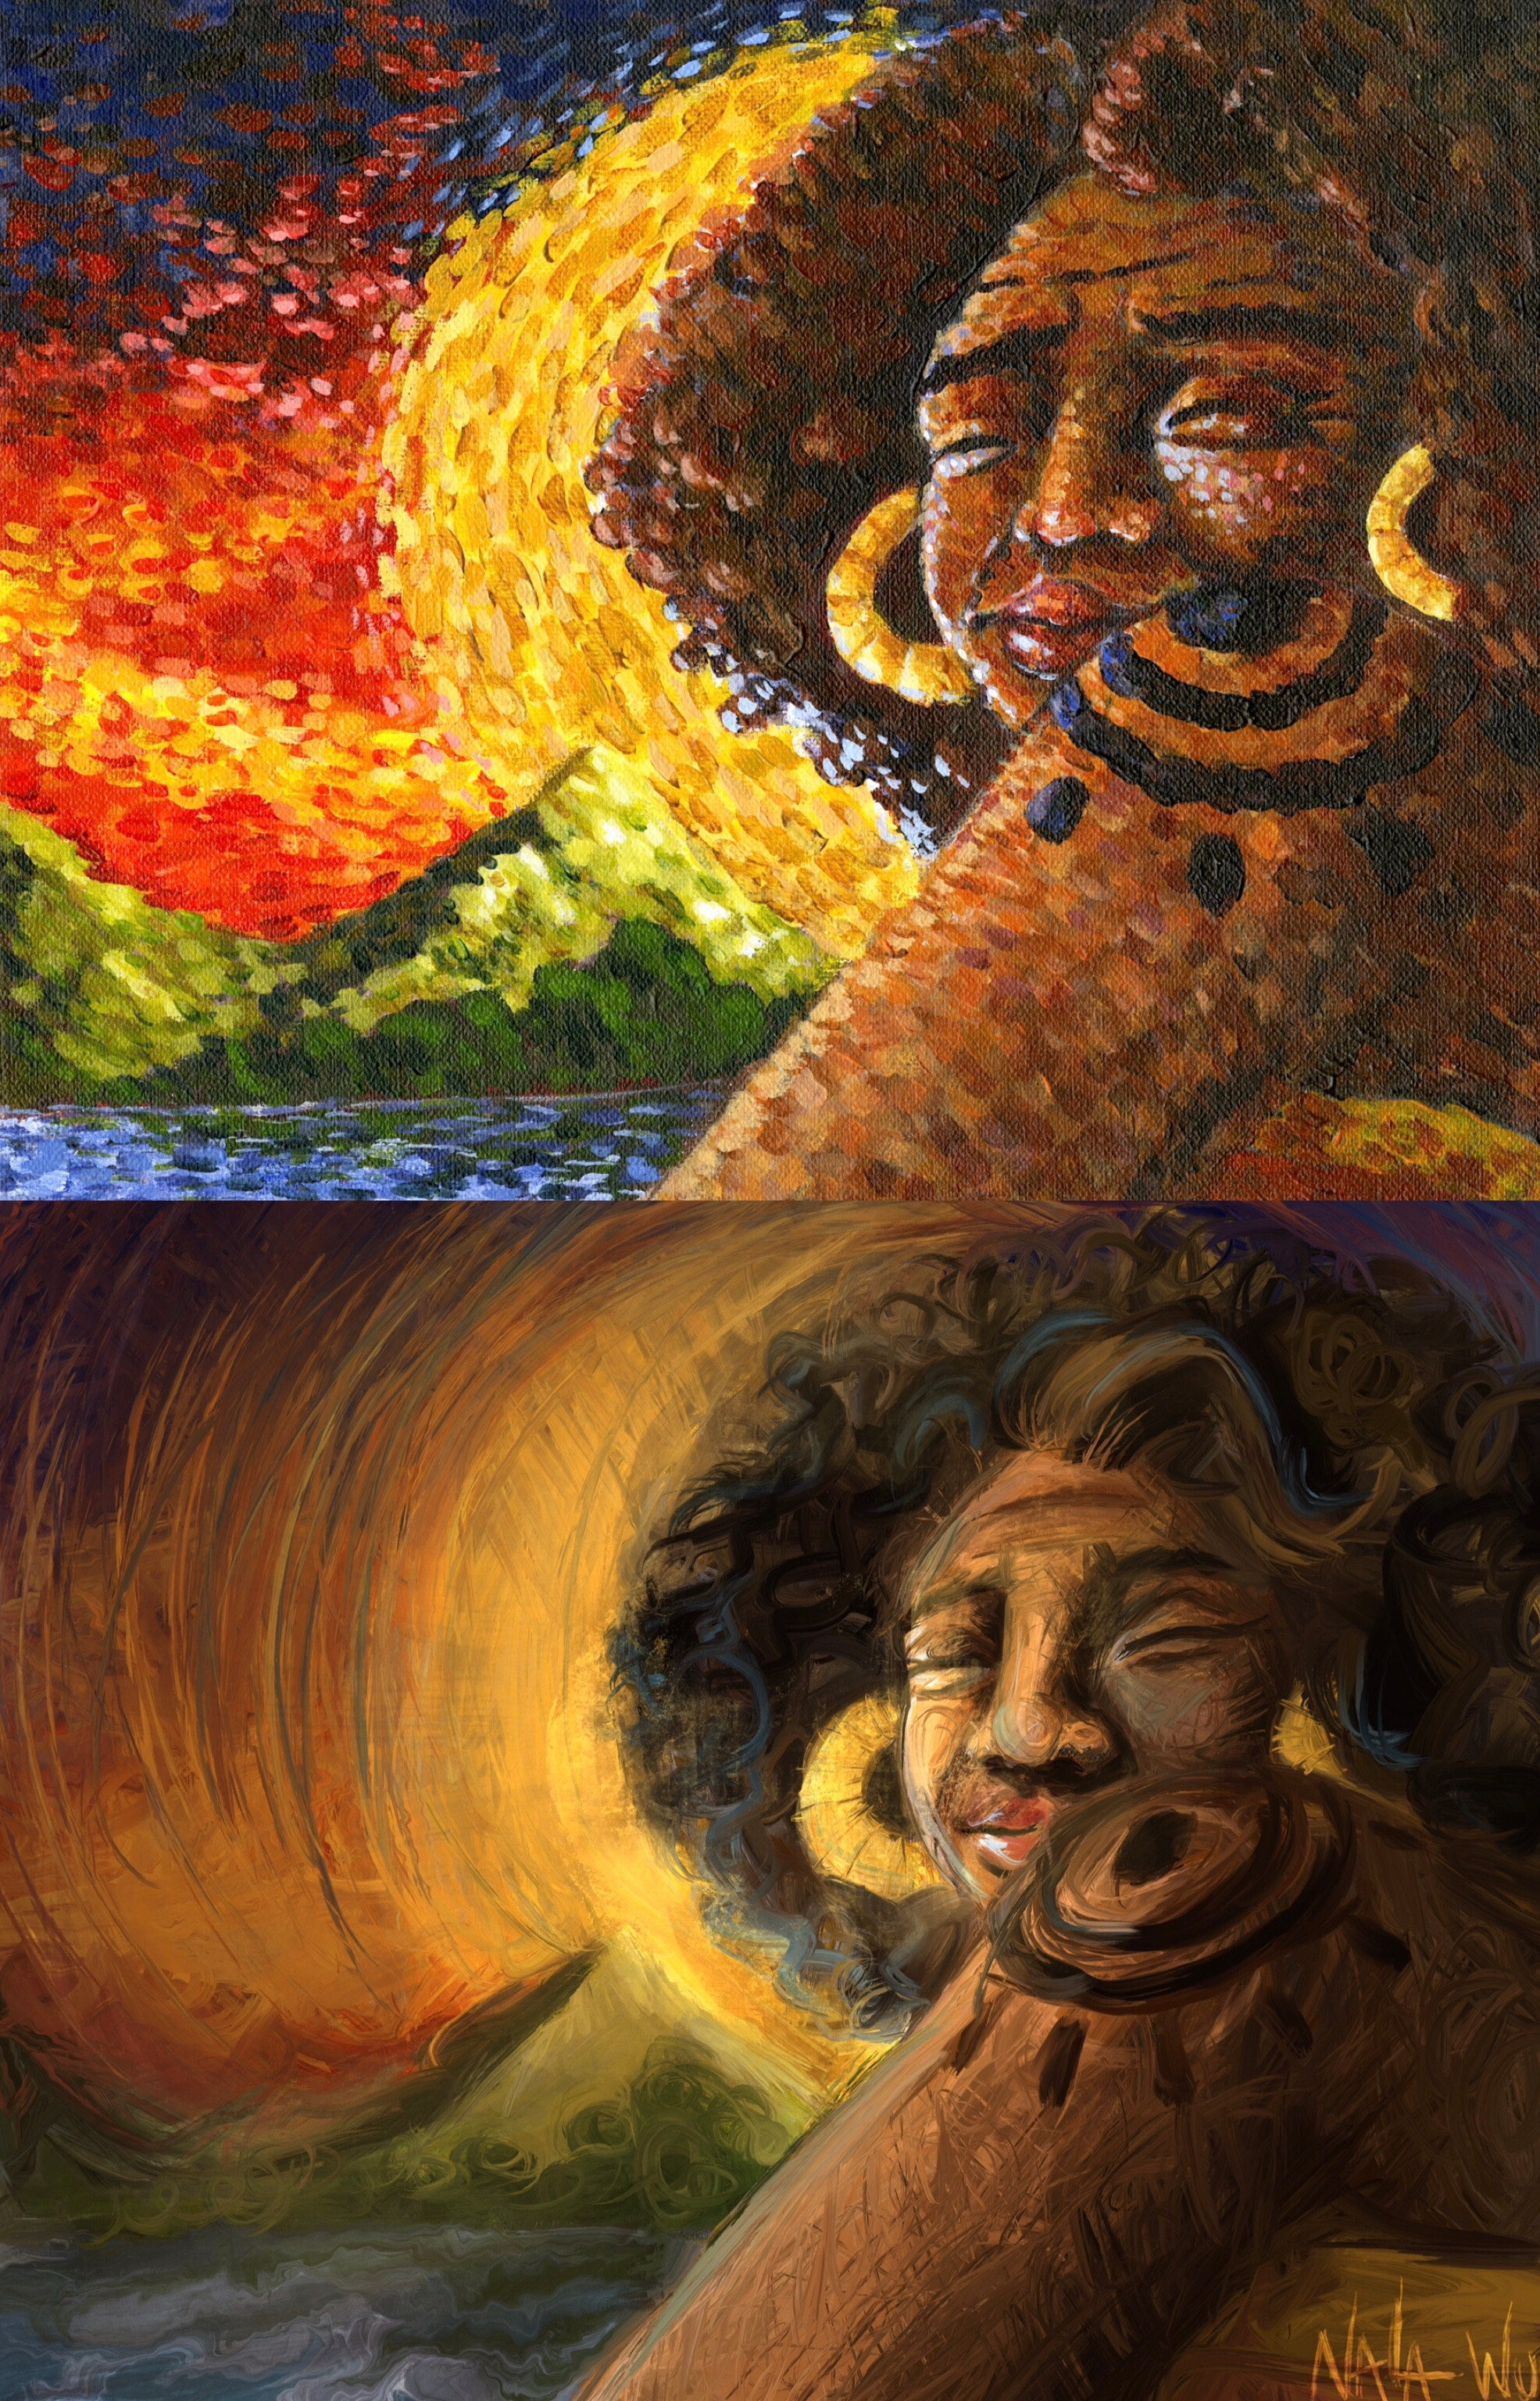 Top: the original acrylic painting Bottom: the digital redraw  The time difference between these two is about 1 month.